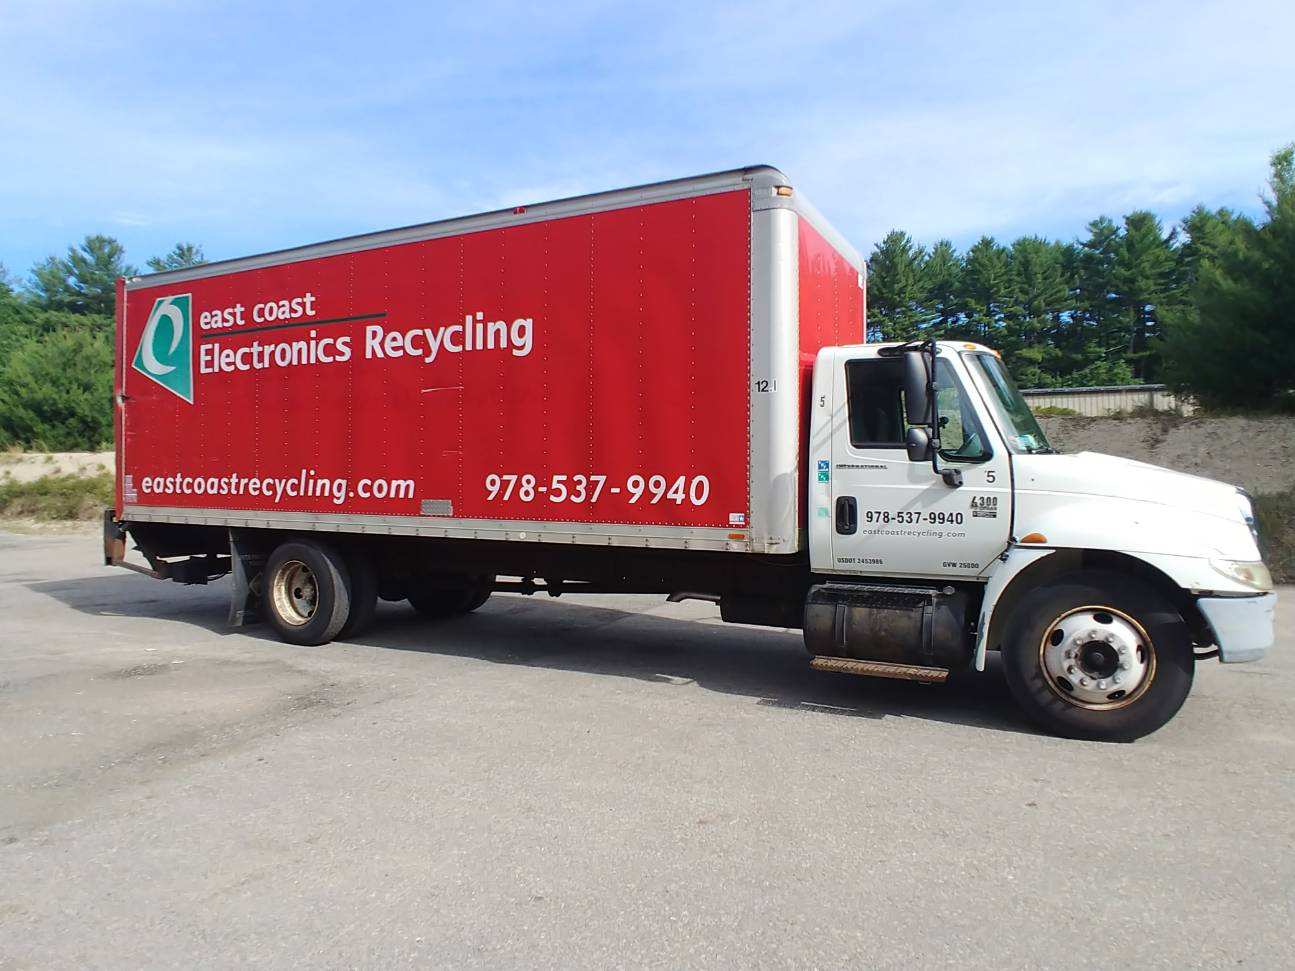 Red East Coast Electronics Recycling Truck